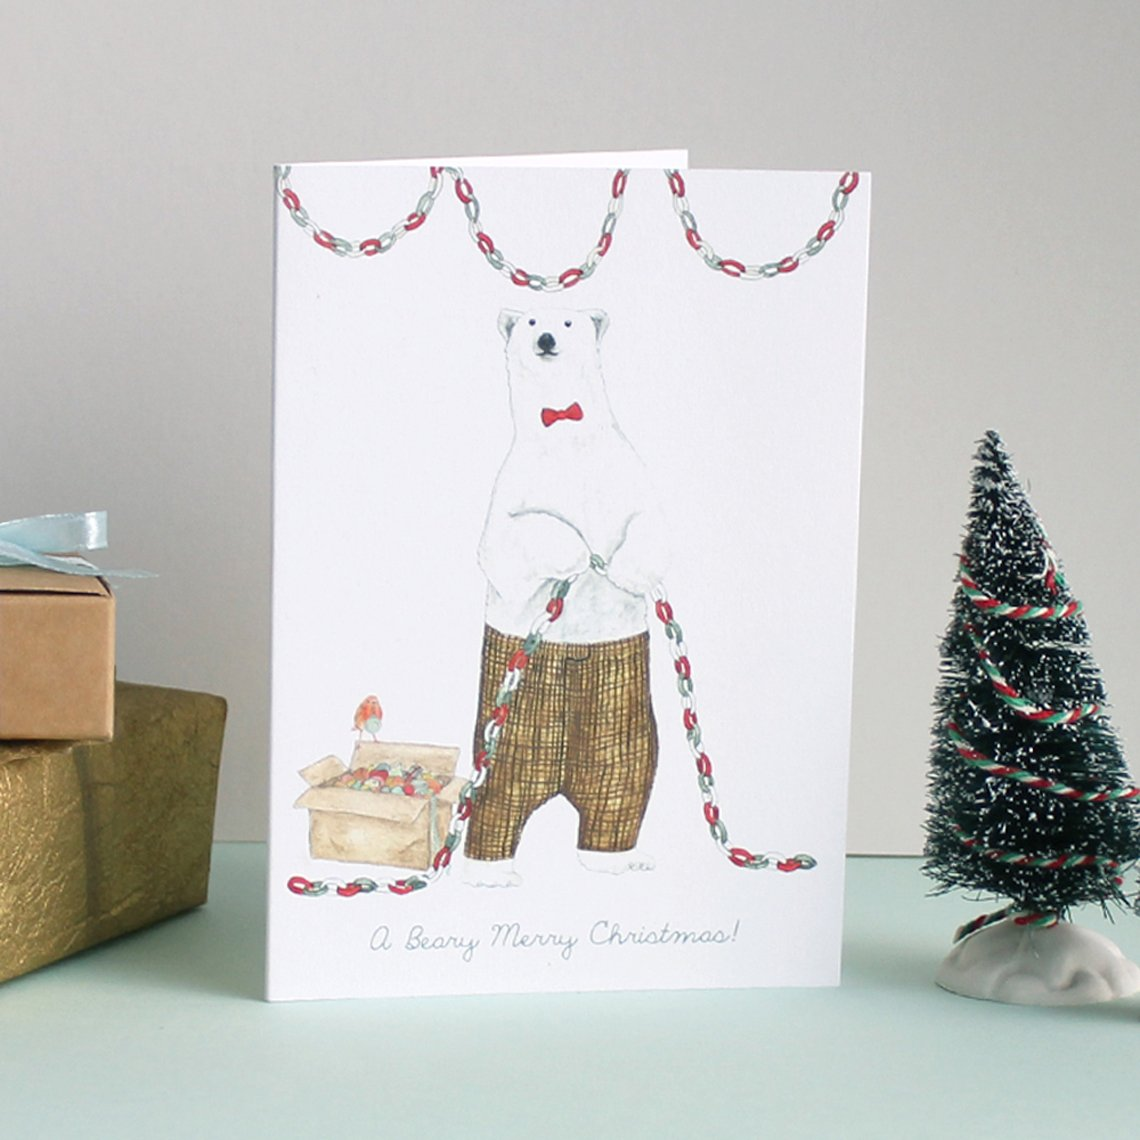 Mister Peebles Christmas Greeting Card 'A Beary Merry Christmas'